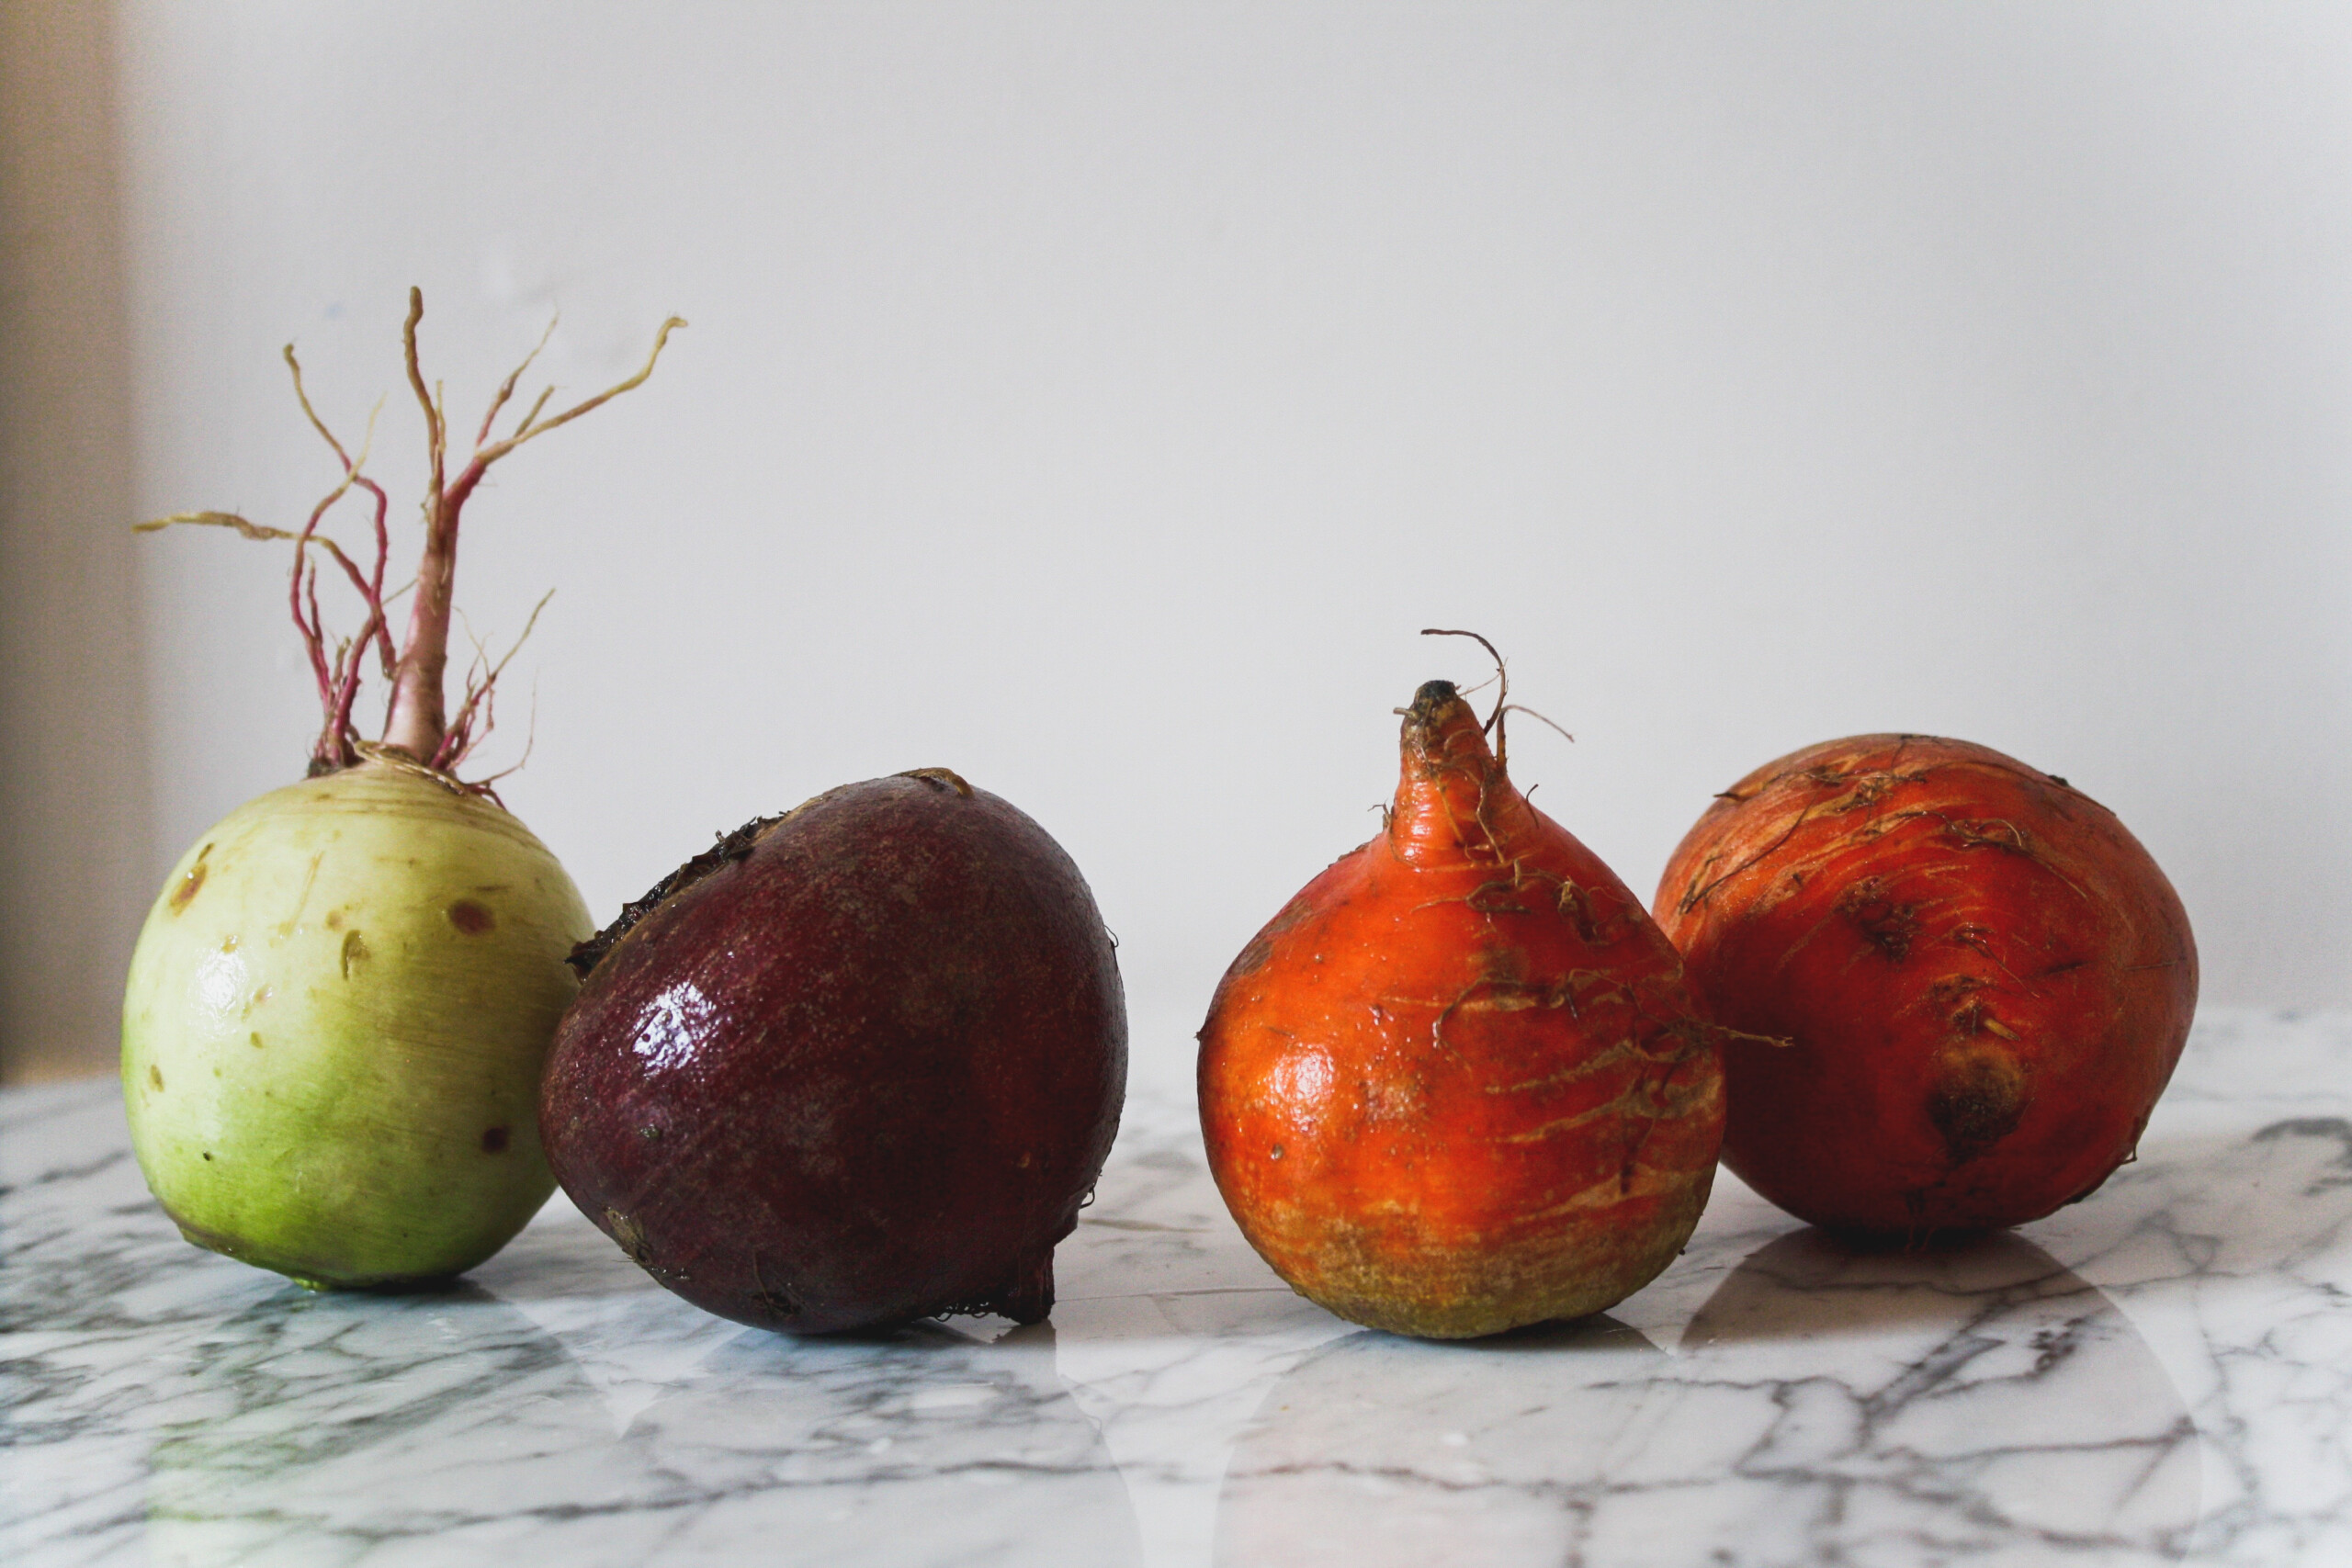 Photograph of beets set on a white marble table